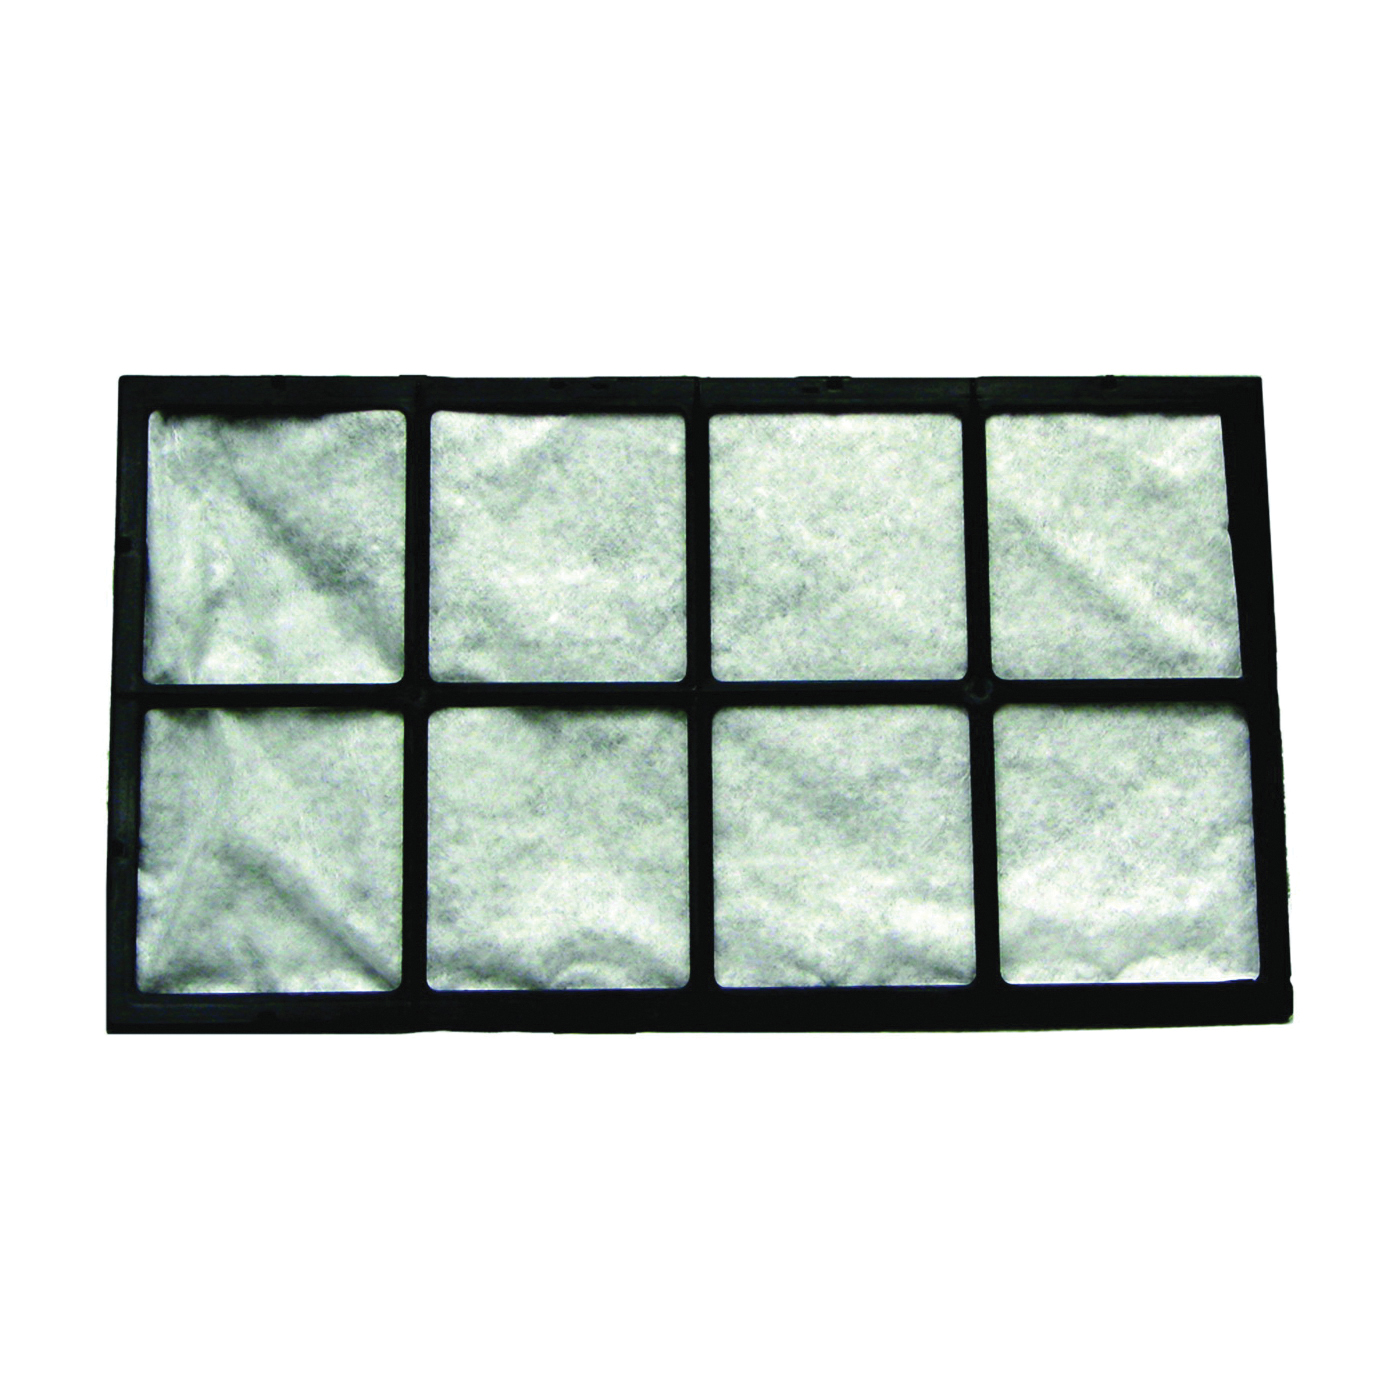 Picture of EssickAir 1051 Air Filter, 18-1/2 in L, 3/4 in W, Plastic Frame, White